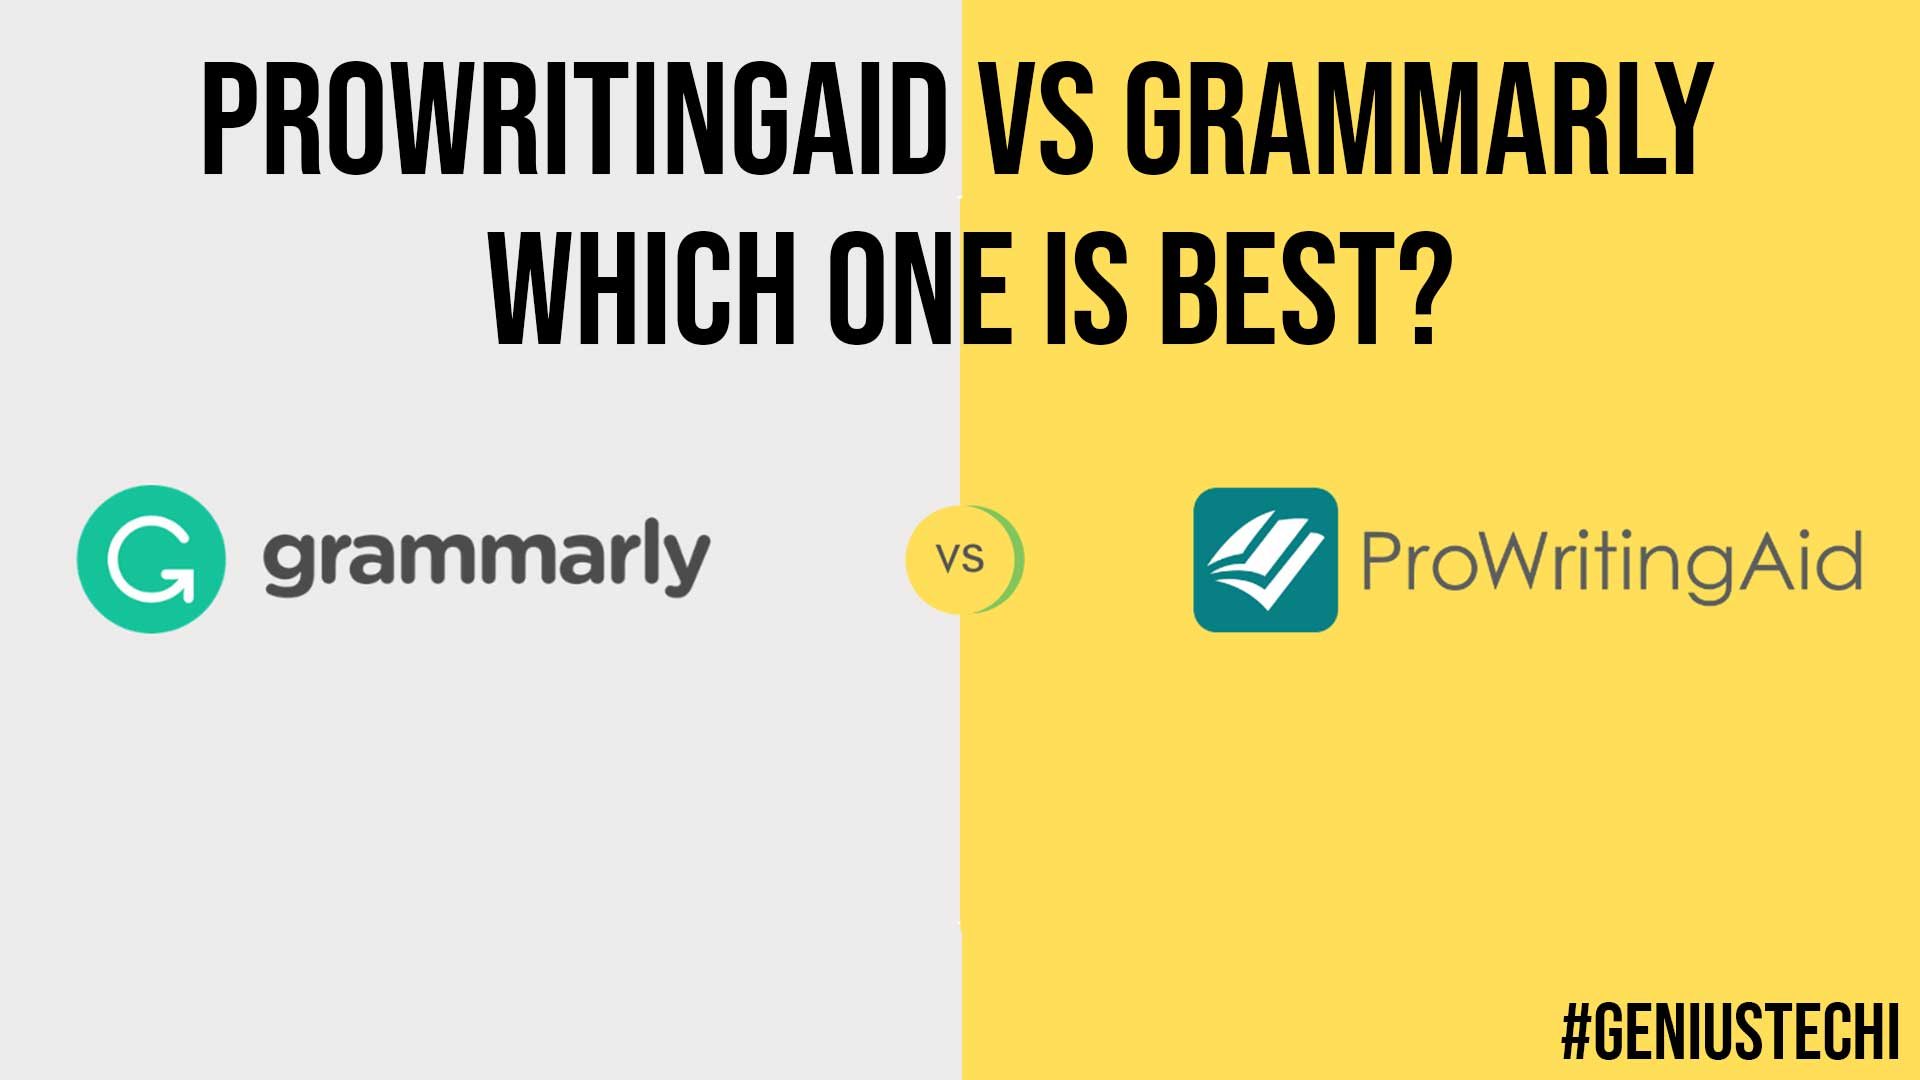 ProWritingAid VS Grammarly Which One is Best